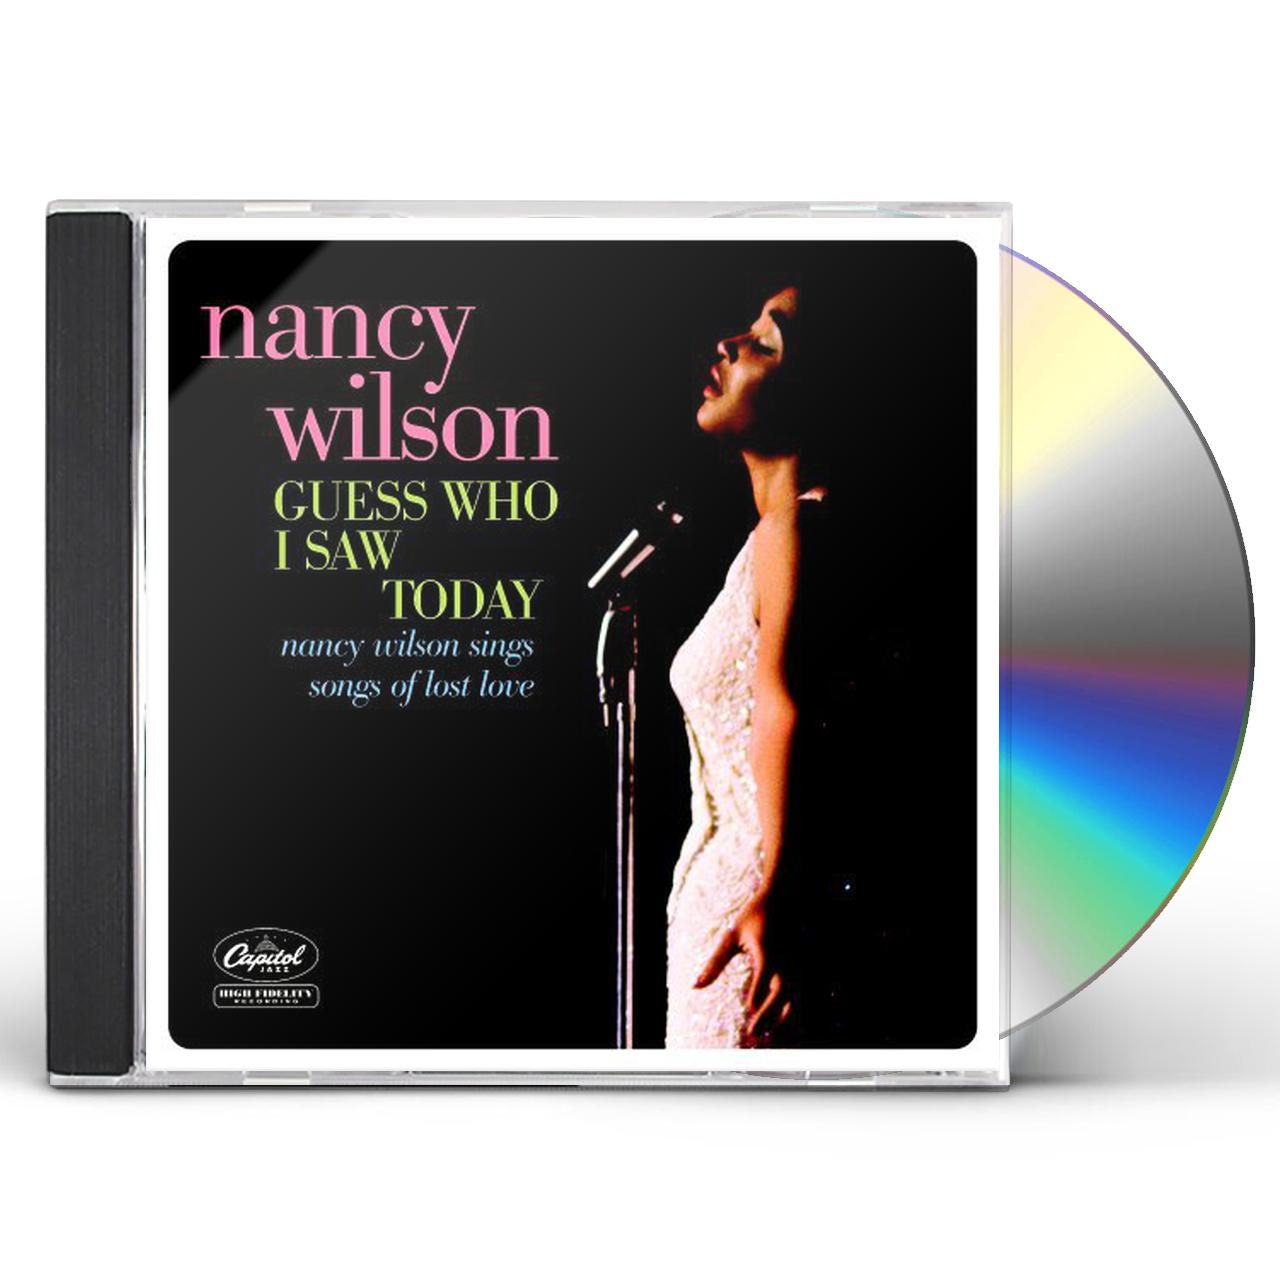 Nancy Wilson GUESS WHO I SAW TODAY CD